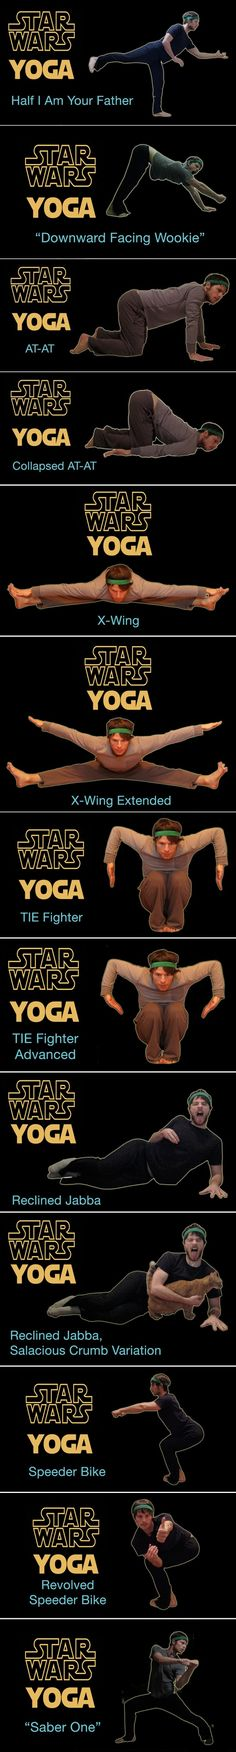 Star Wars Yoga series.. Laughing so hard. Maybe I'm just tired.